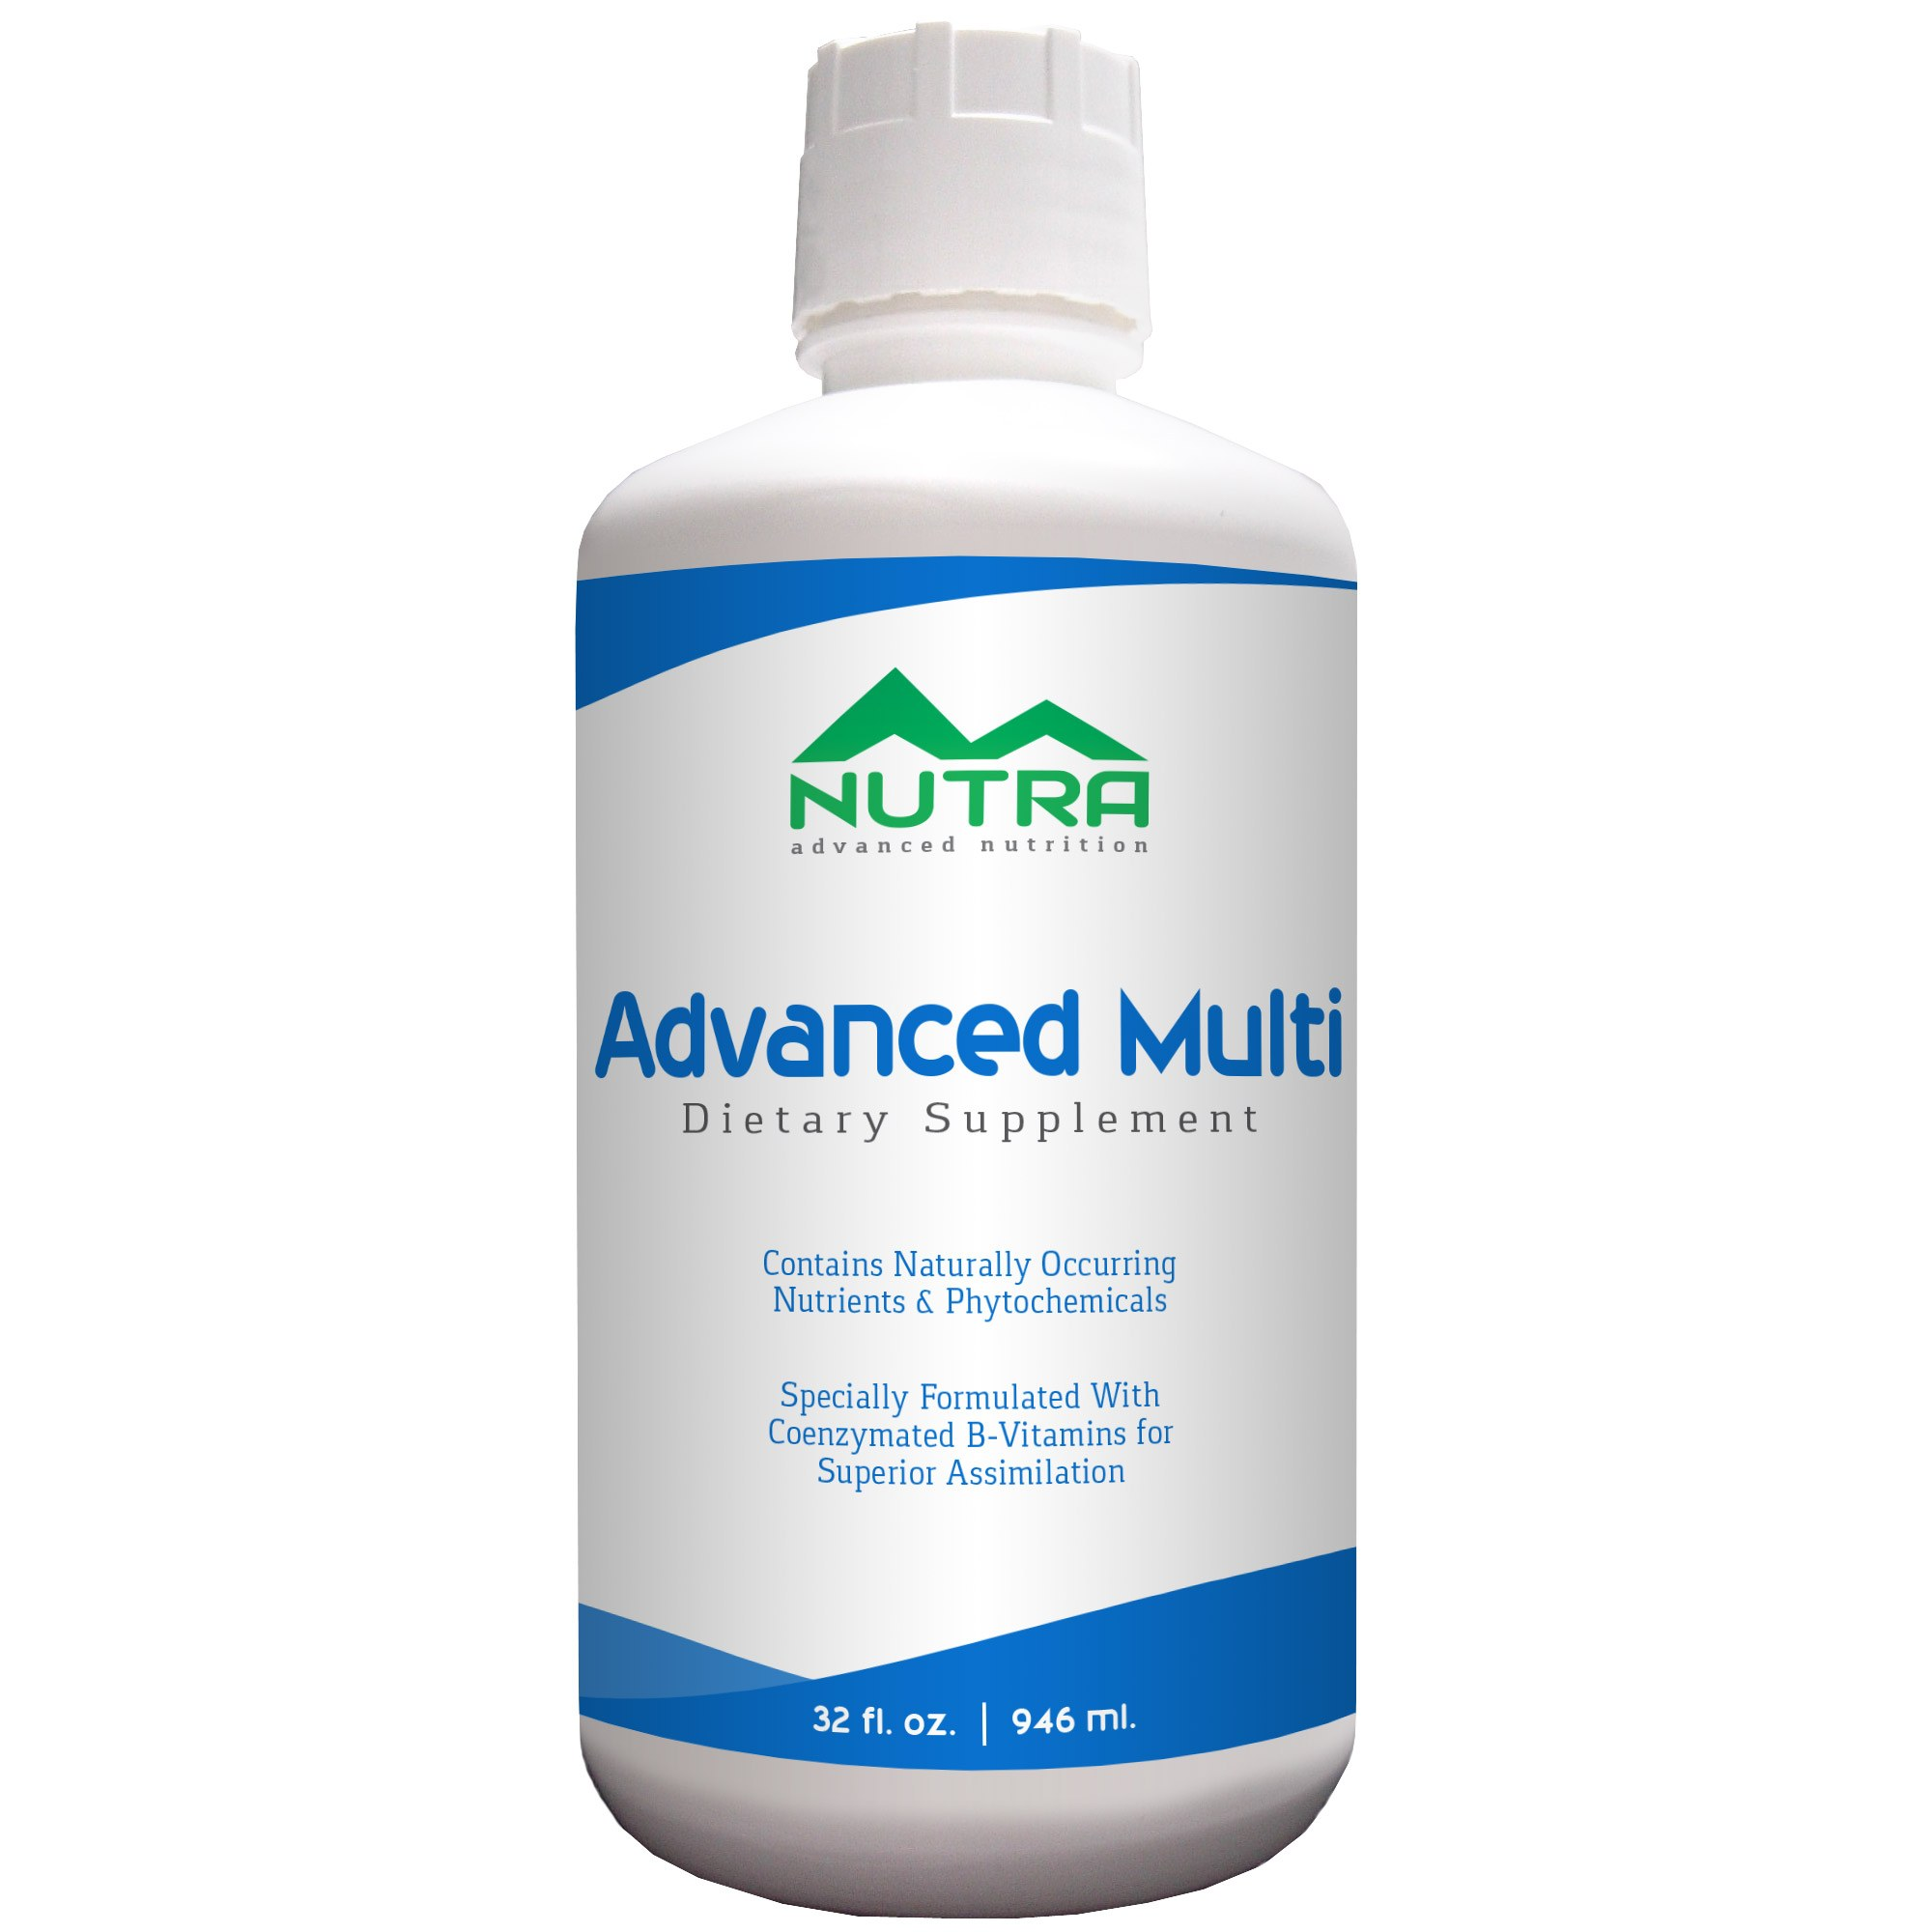 Private Label Daily Multivitamin Manufacturer